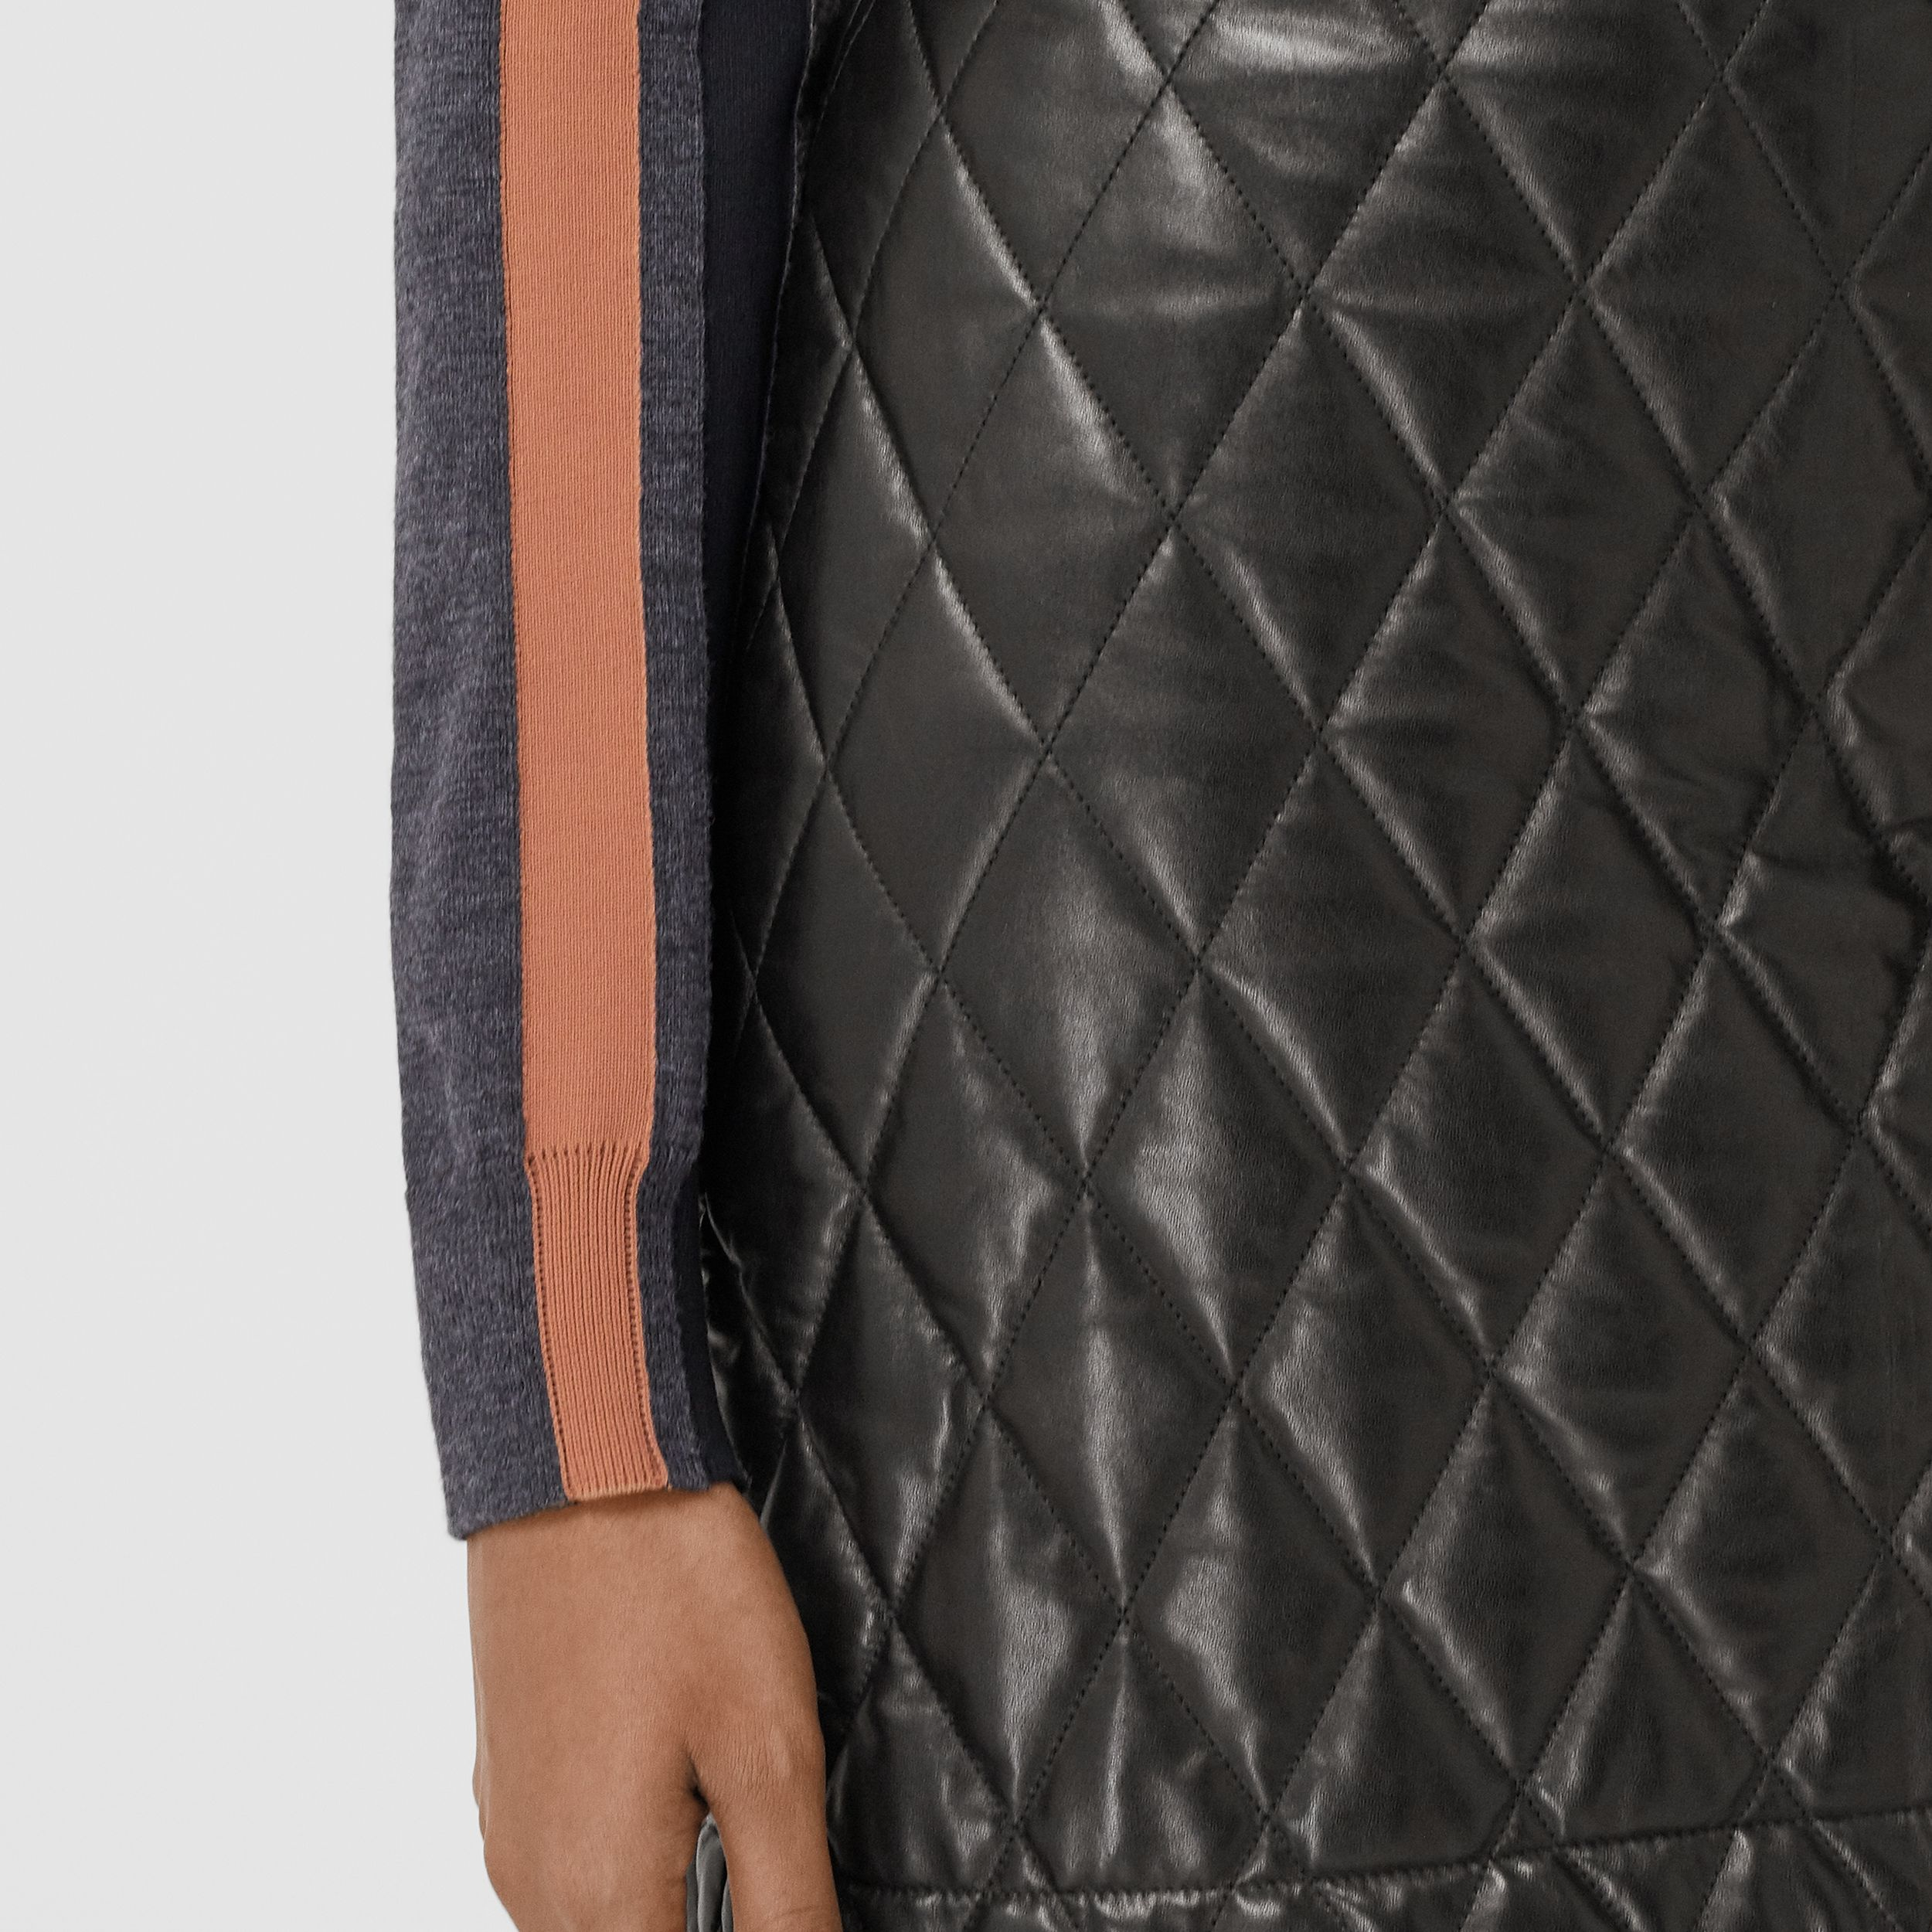 Diamond Quilted Lambskin Mini Skirt in Black - Women | Burberry - 2